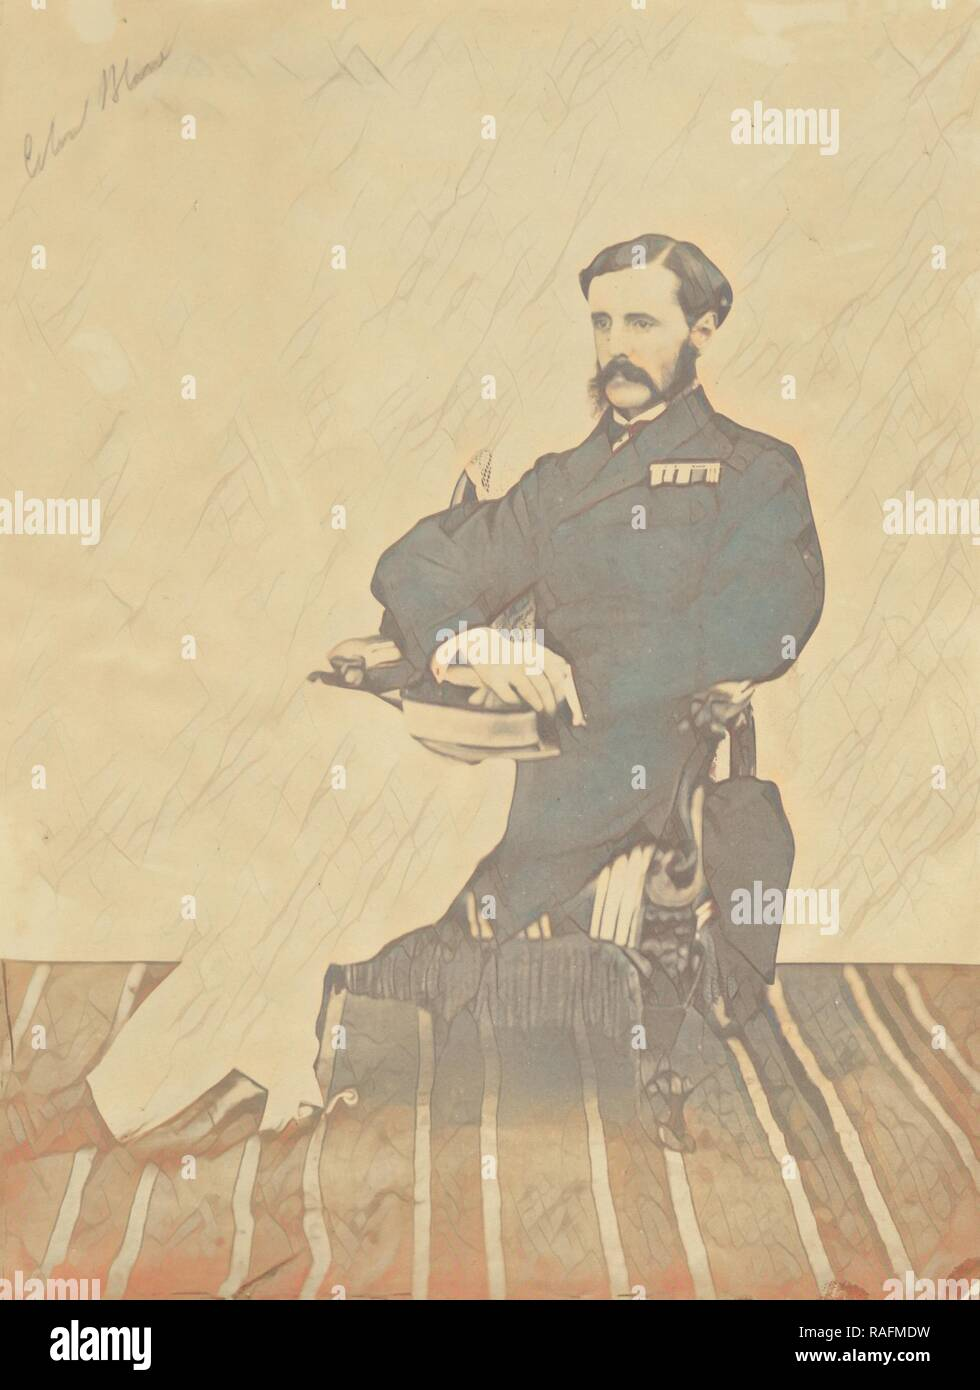 Colonel Seymour Blane, A.D.C, India, 1858 - 1869, Albumen silver print. Reimagined by Gibon. Classic art with a reimagined - Stock Image